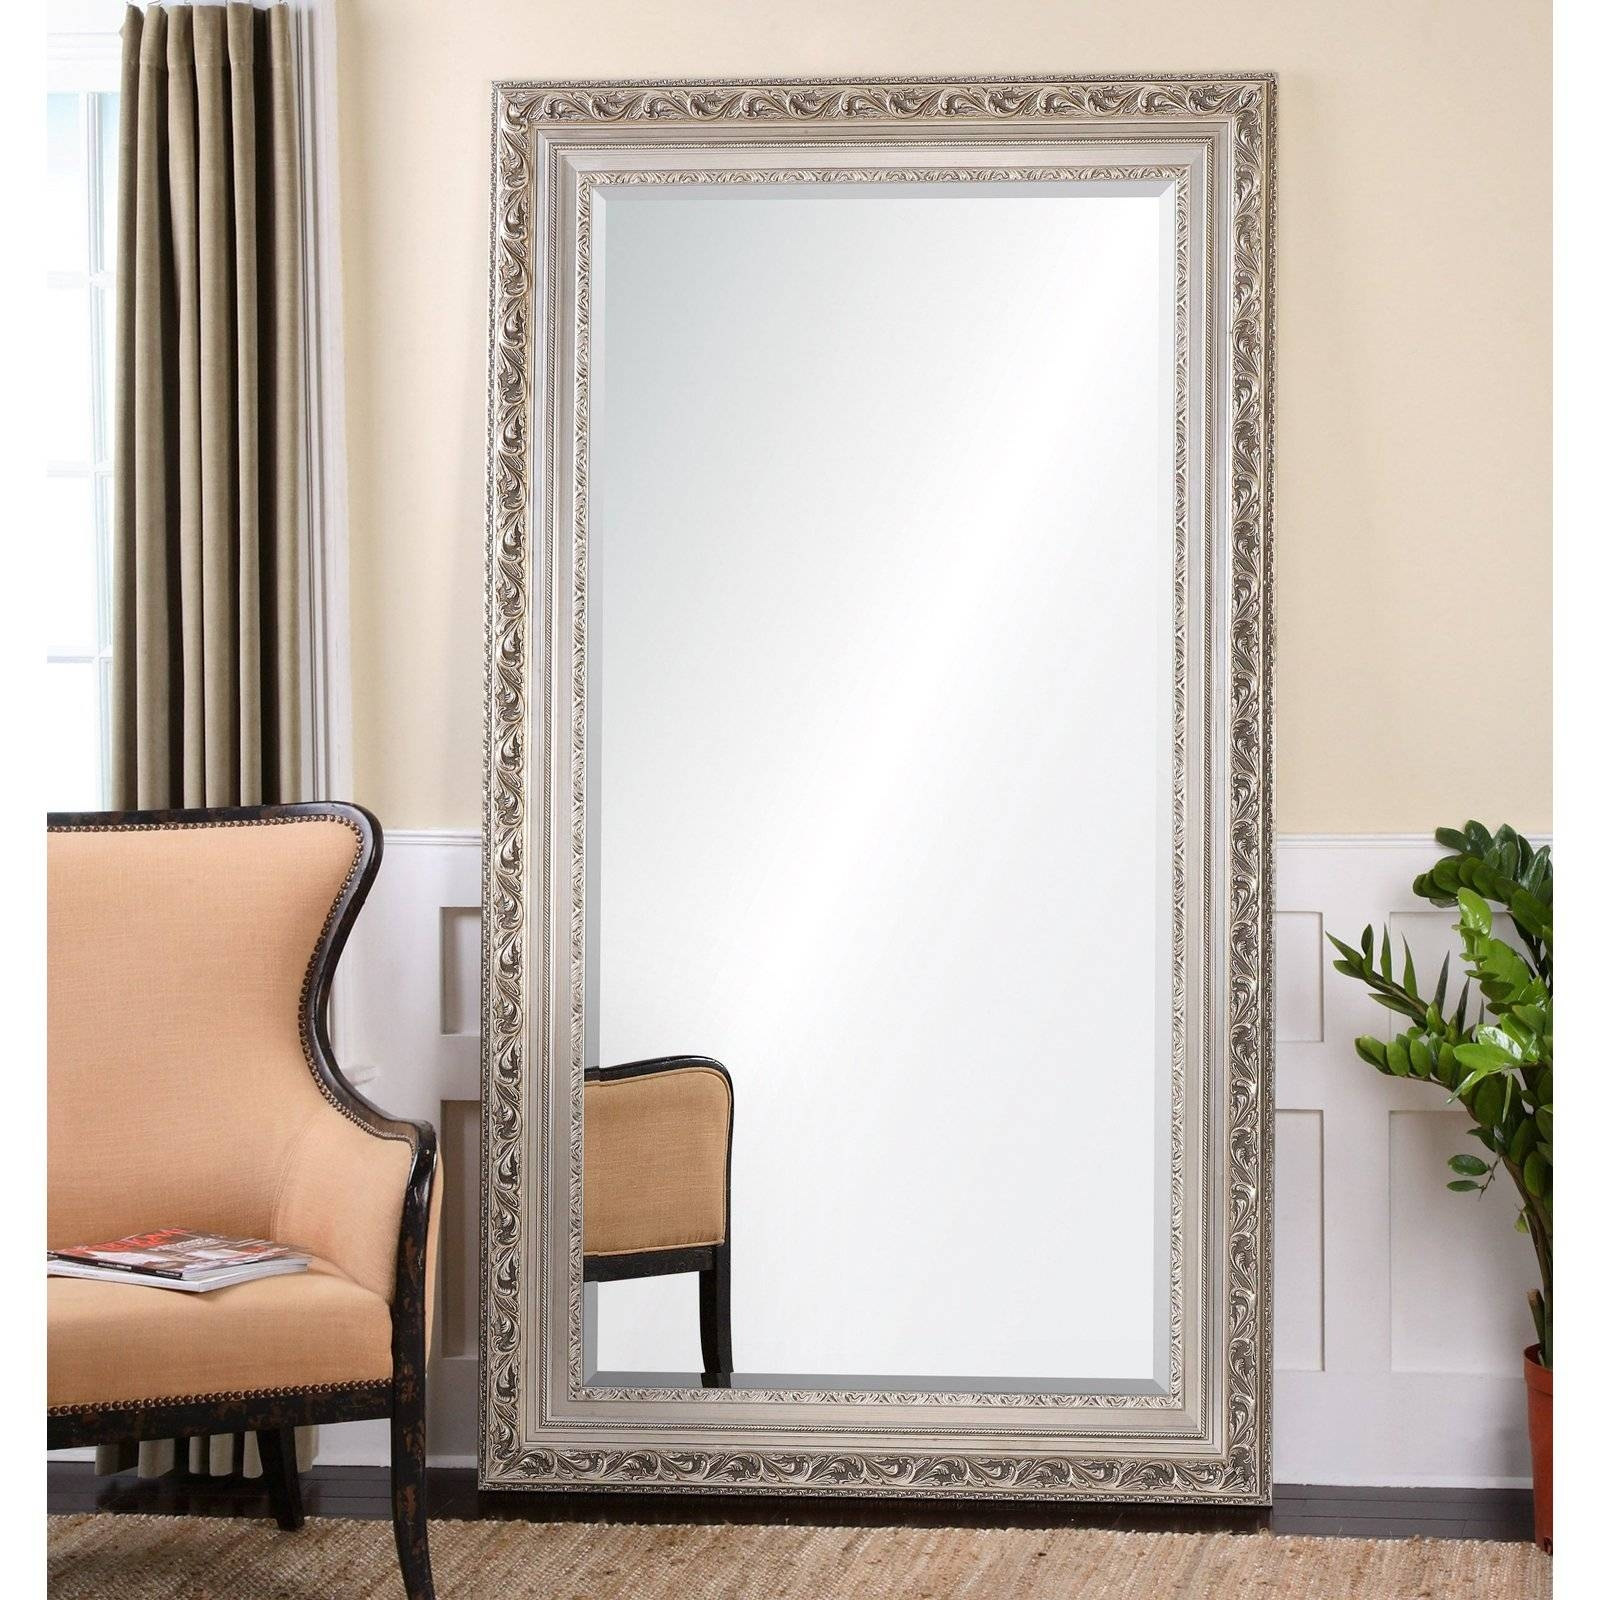 Big Mirrors For Cheap – Harpsounds.co throughout Huge Mirrors for Cheap (Image 8 of 25)